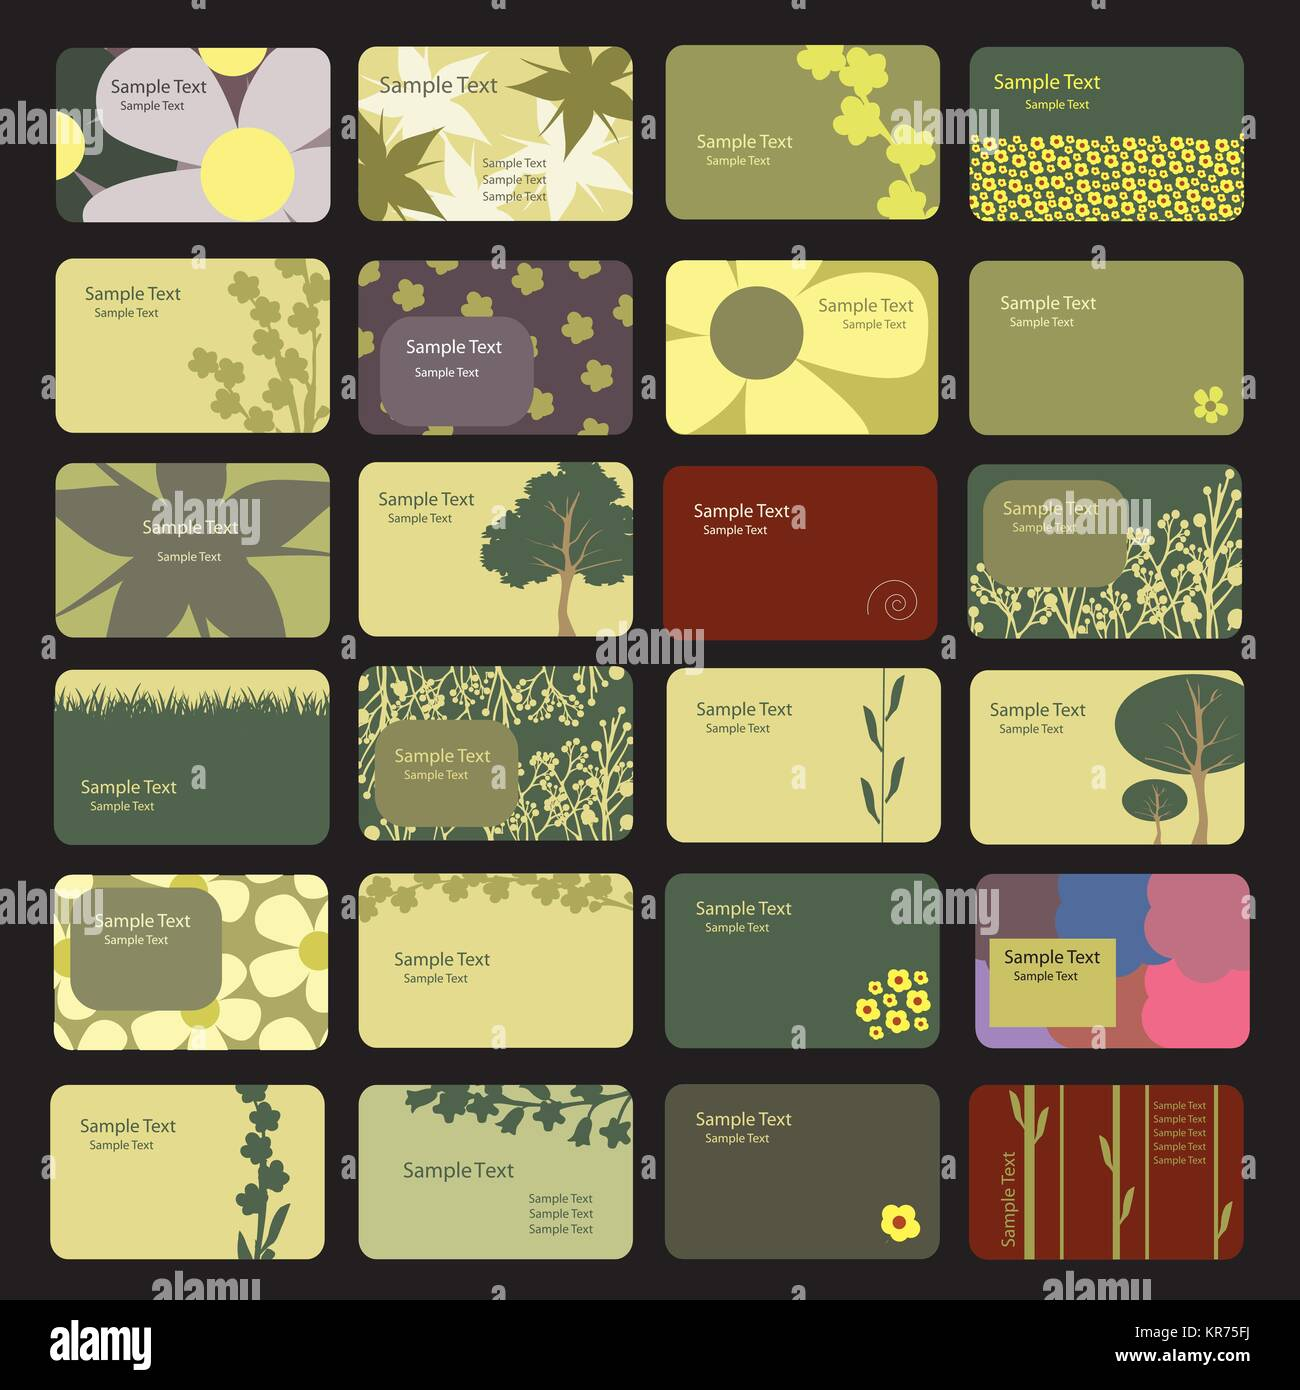 24 Colorful Business Cards with Abstract Designs - Illustration in ...